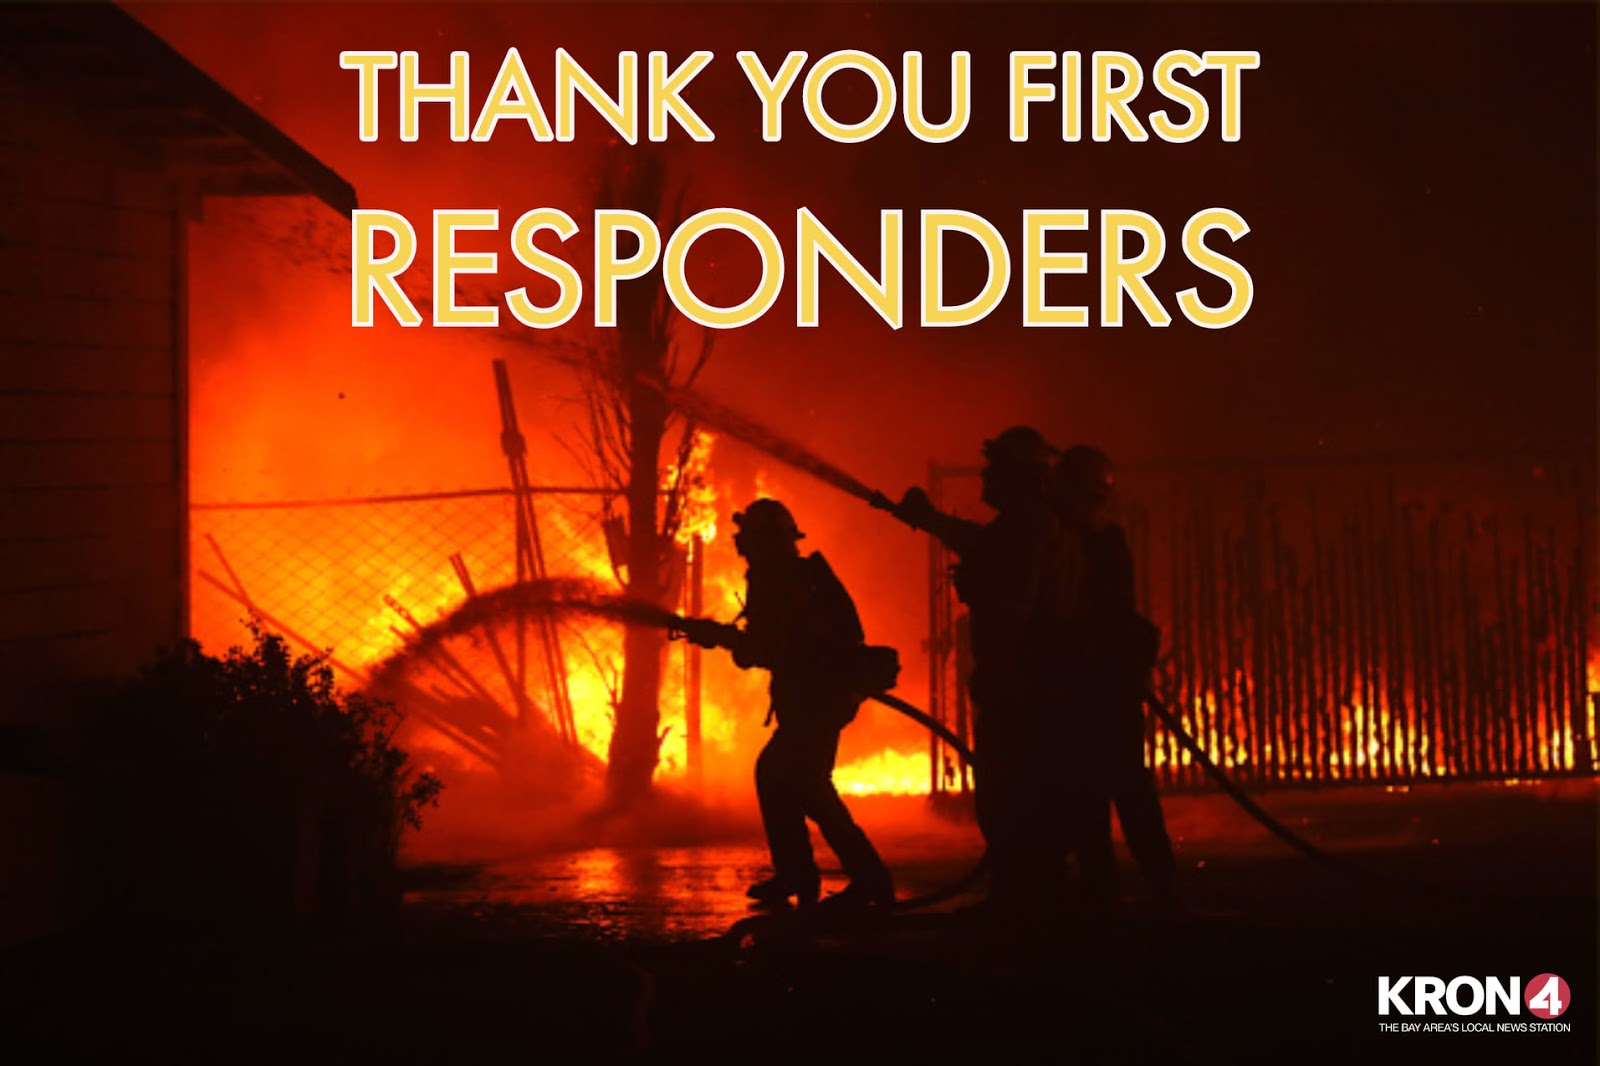 National First Responders Day Wishes Awesome Picture